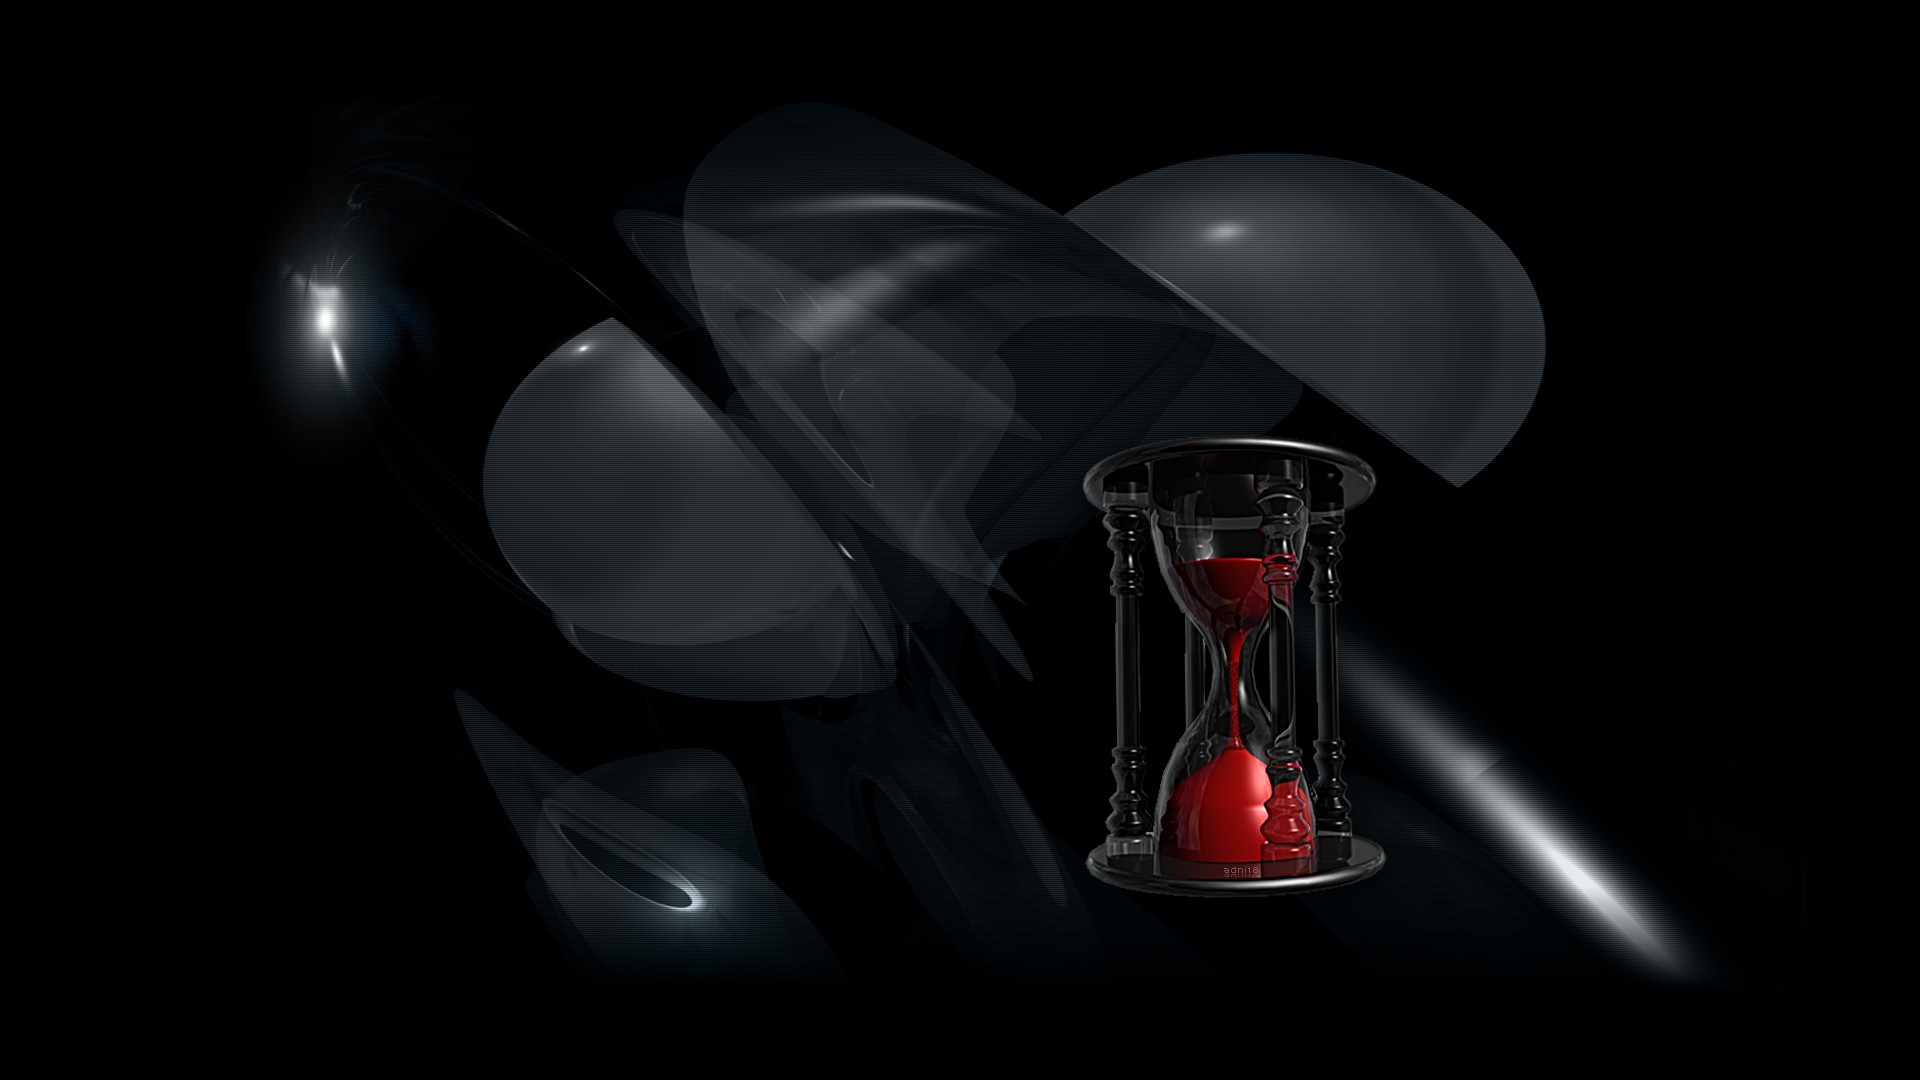 Hourglass HD Wallpapers | Backgrounds - Wallpaper Abyss